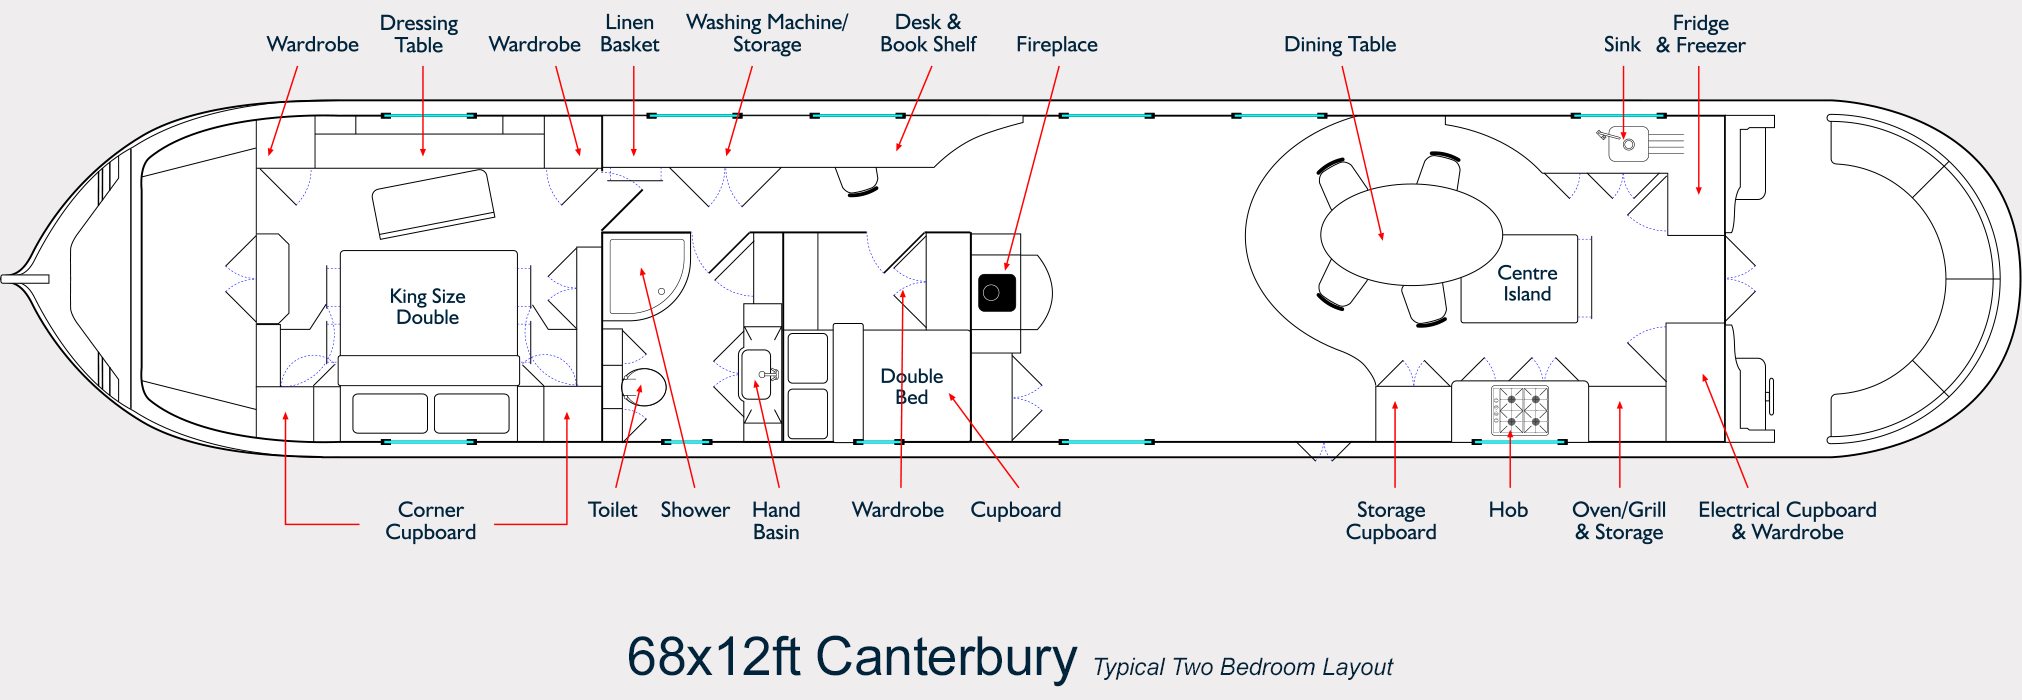 68x12ft-canterbury-2bed-widebeam